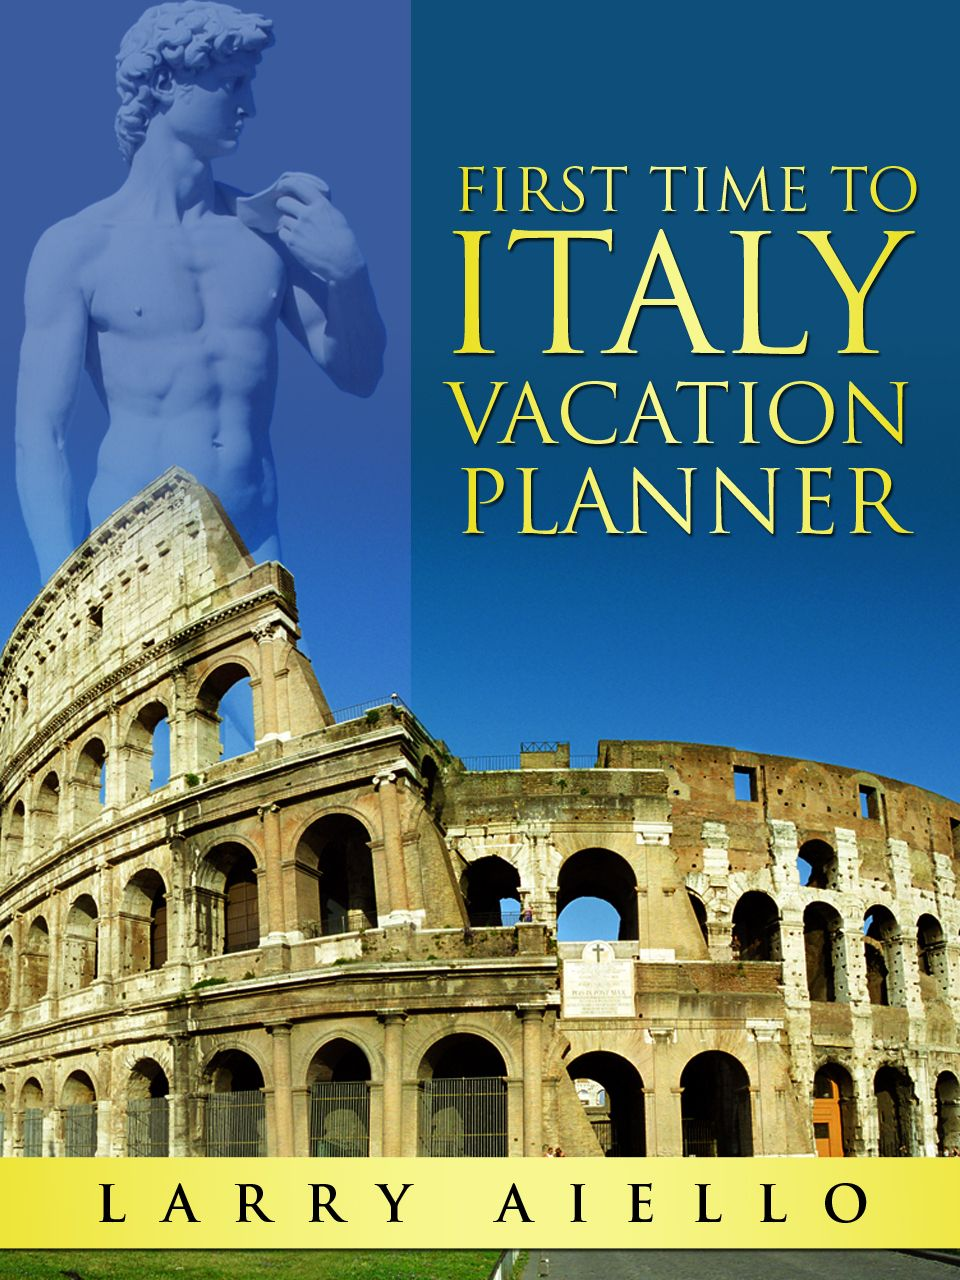 Http://www.amazon.com/First-Italy-Vacation-Planner-ebook